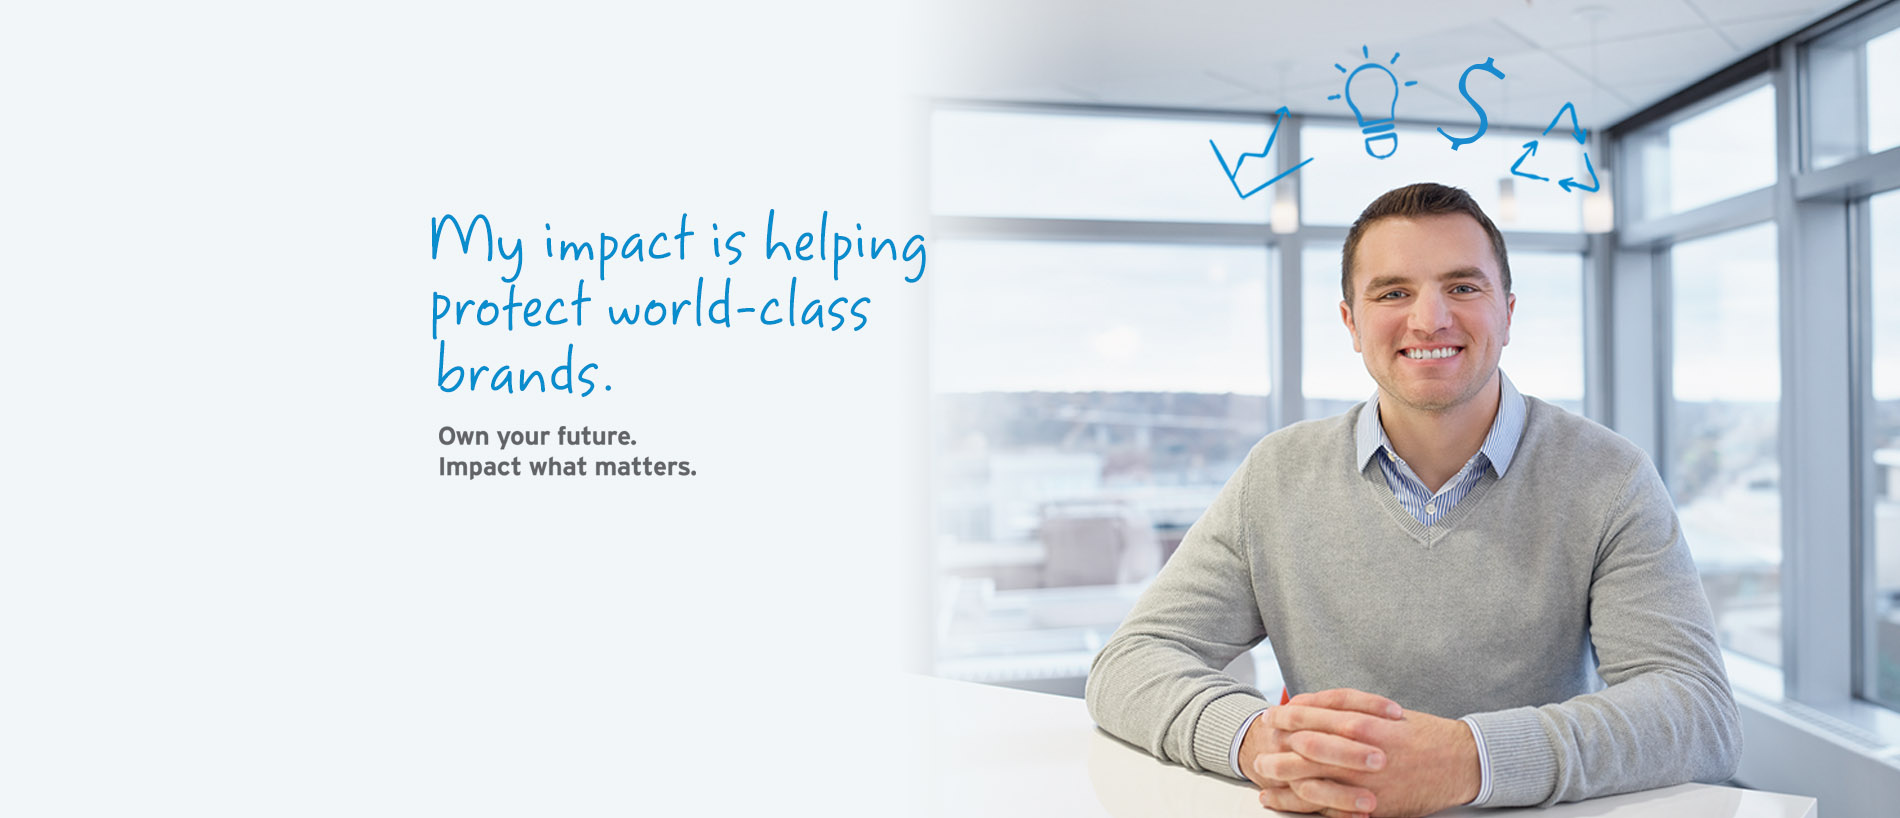 My impact is helping protect world-class brands. Own your future. Impact what matters.